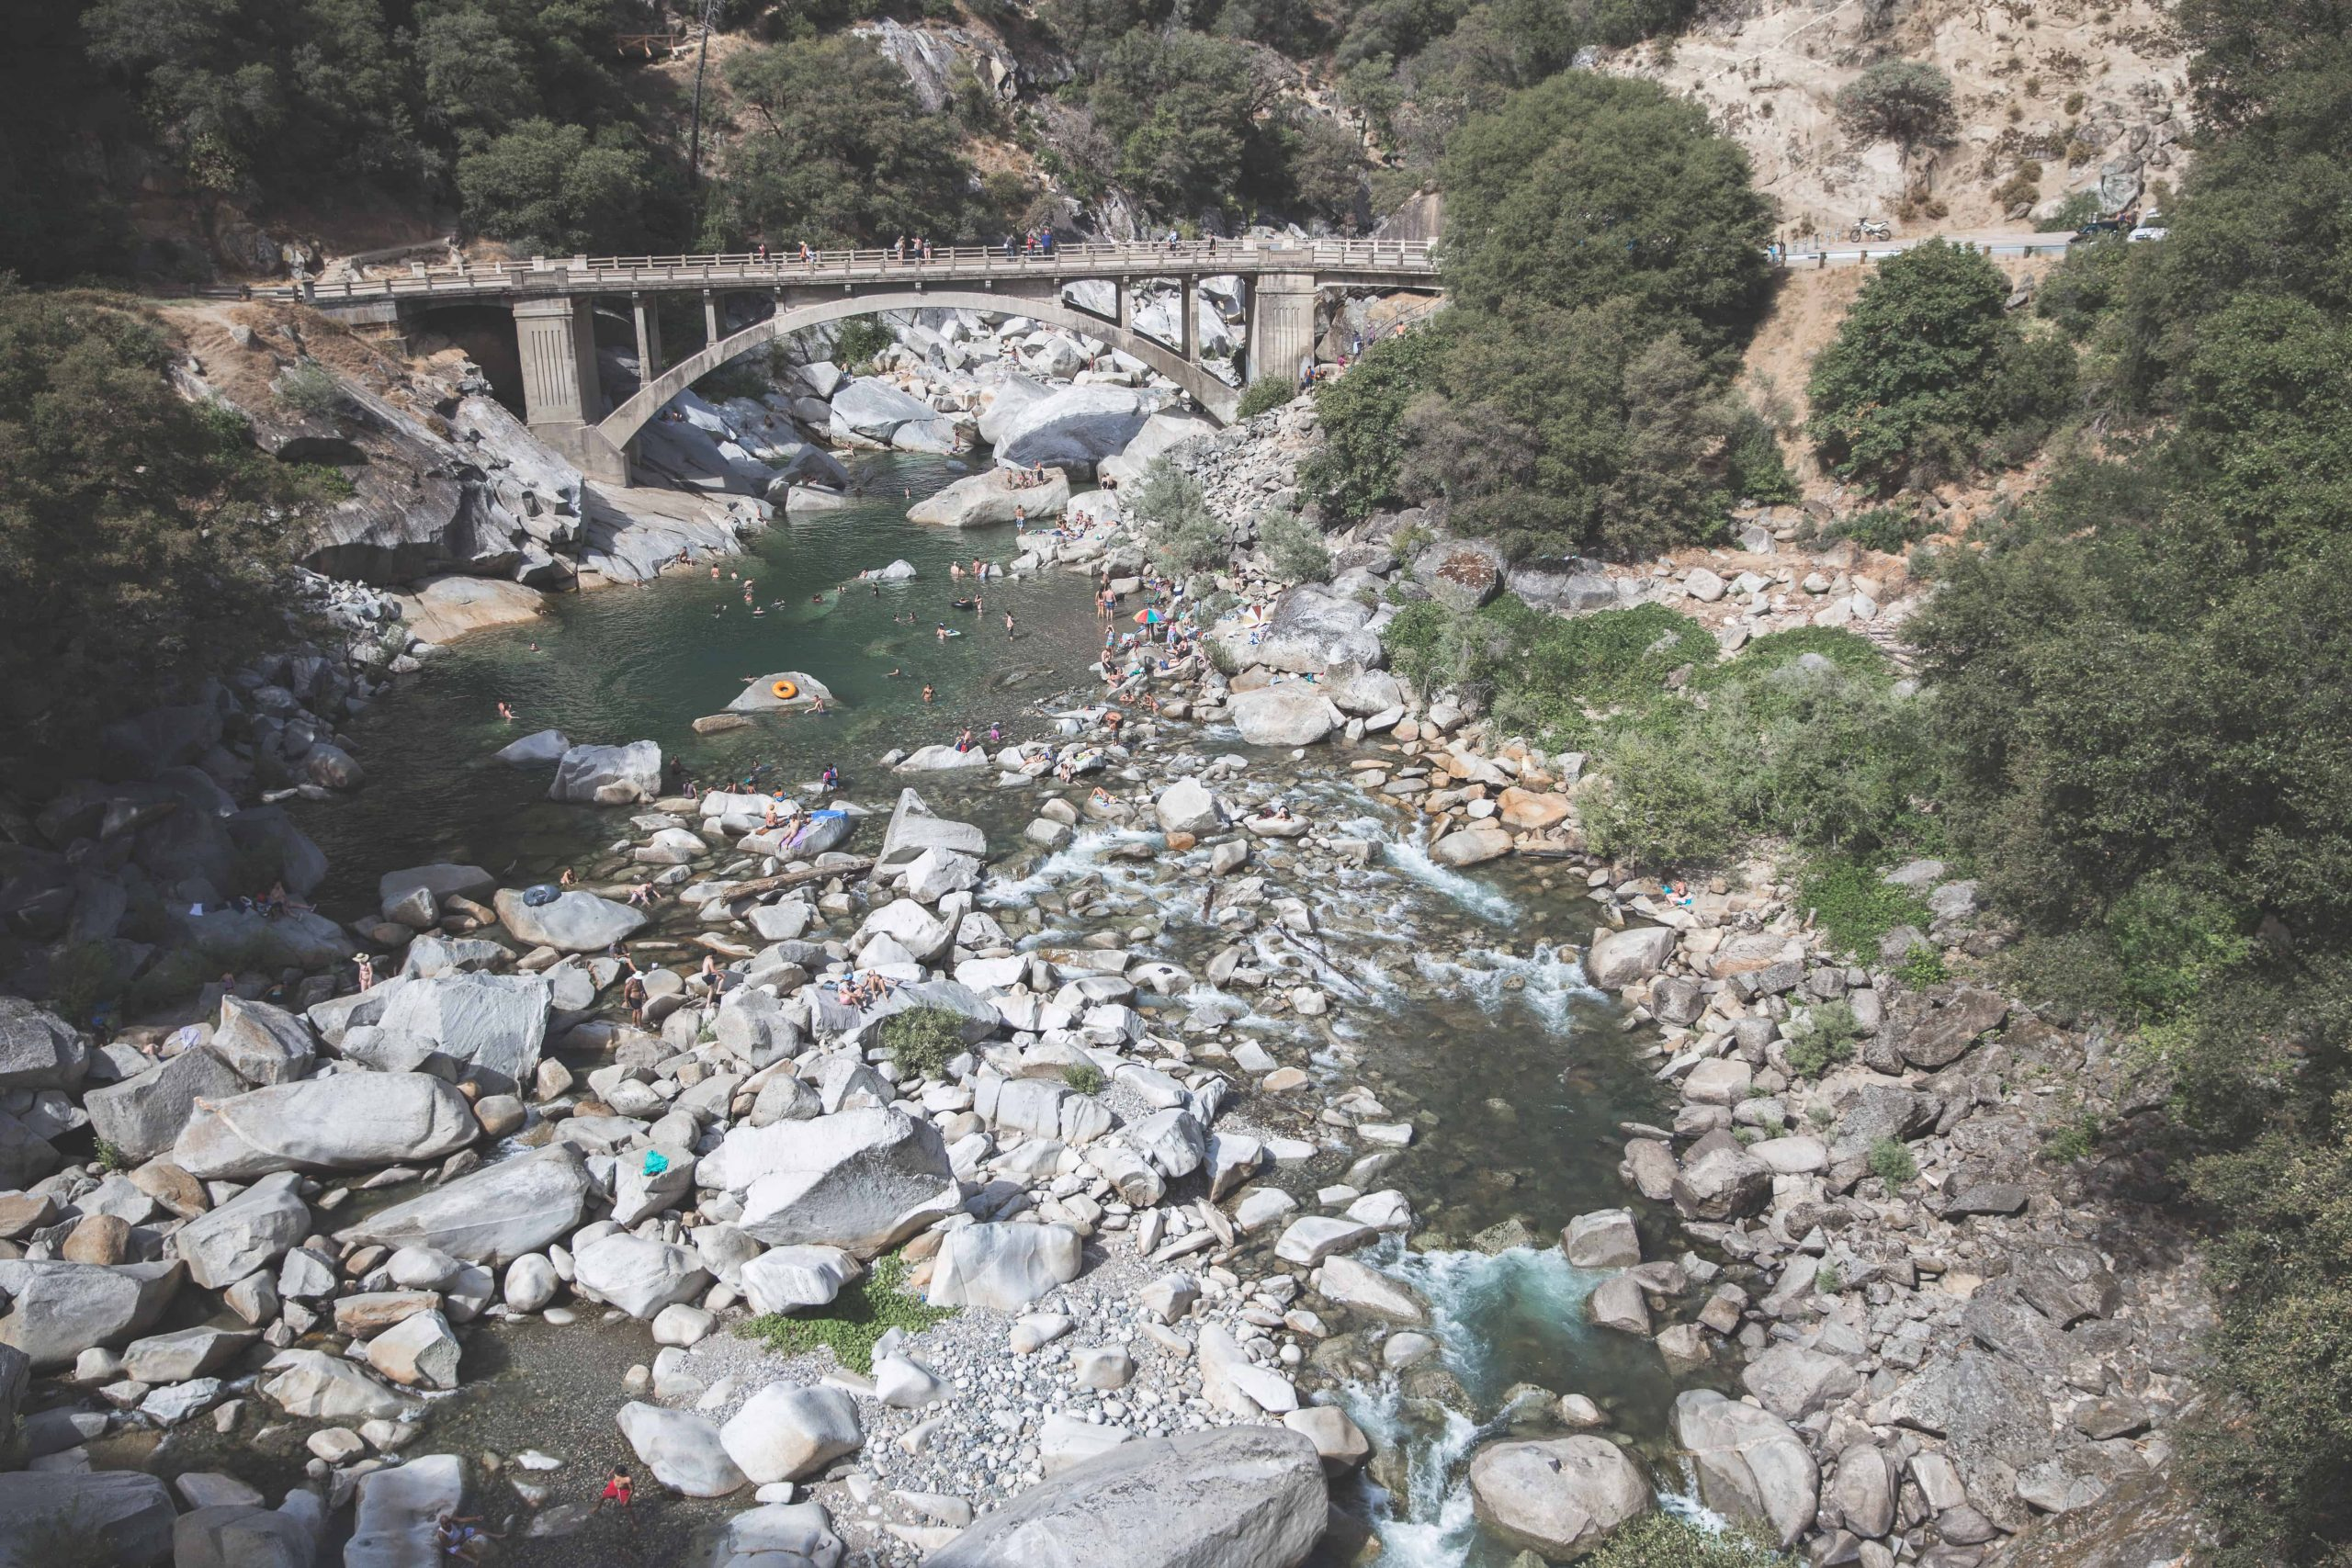 The Yuba River in California flows through lots of rocks and under a bridge. There are people swimming in it, surrounded by trees.